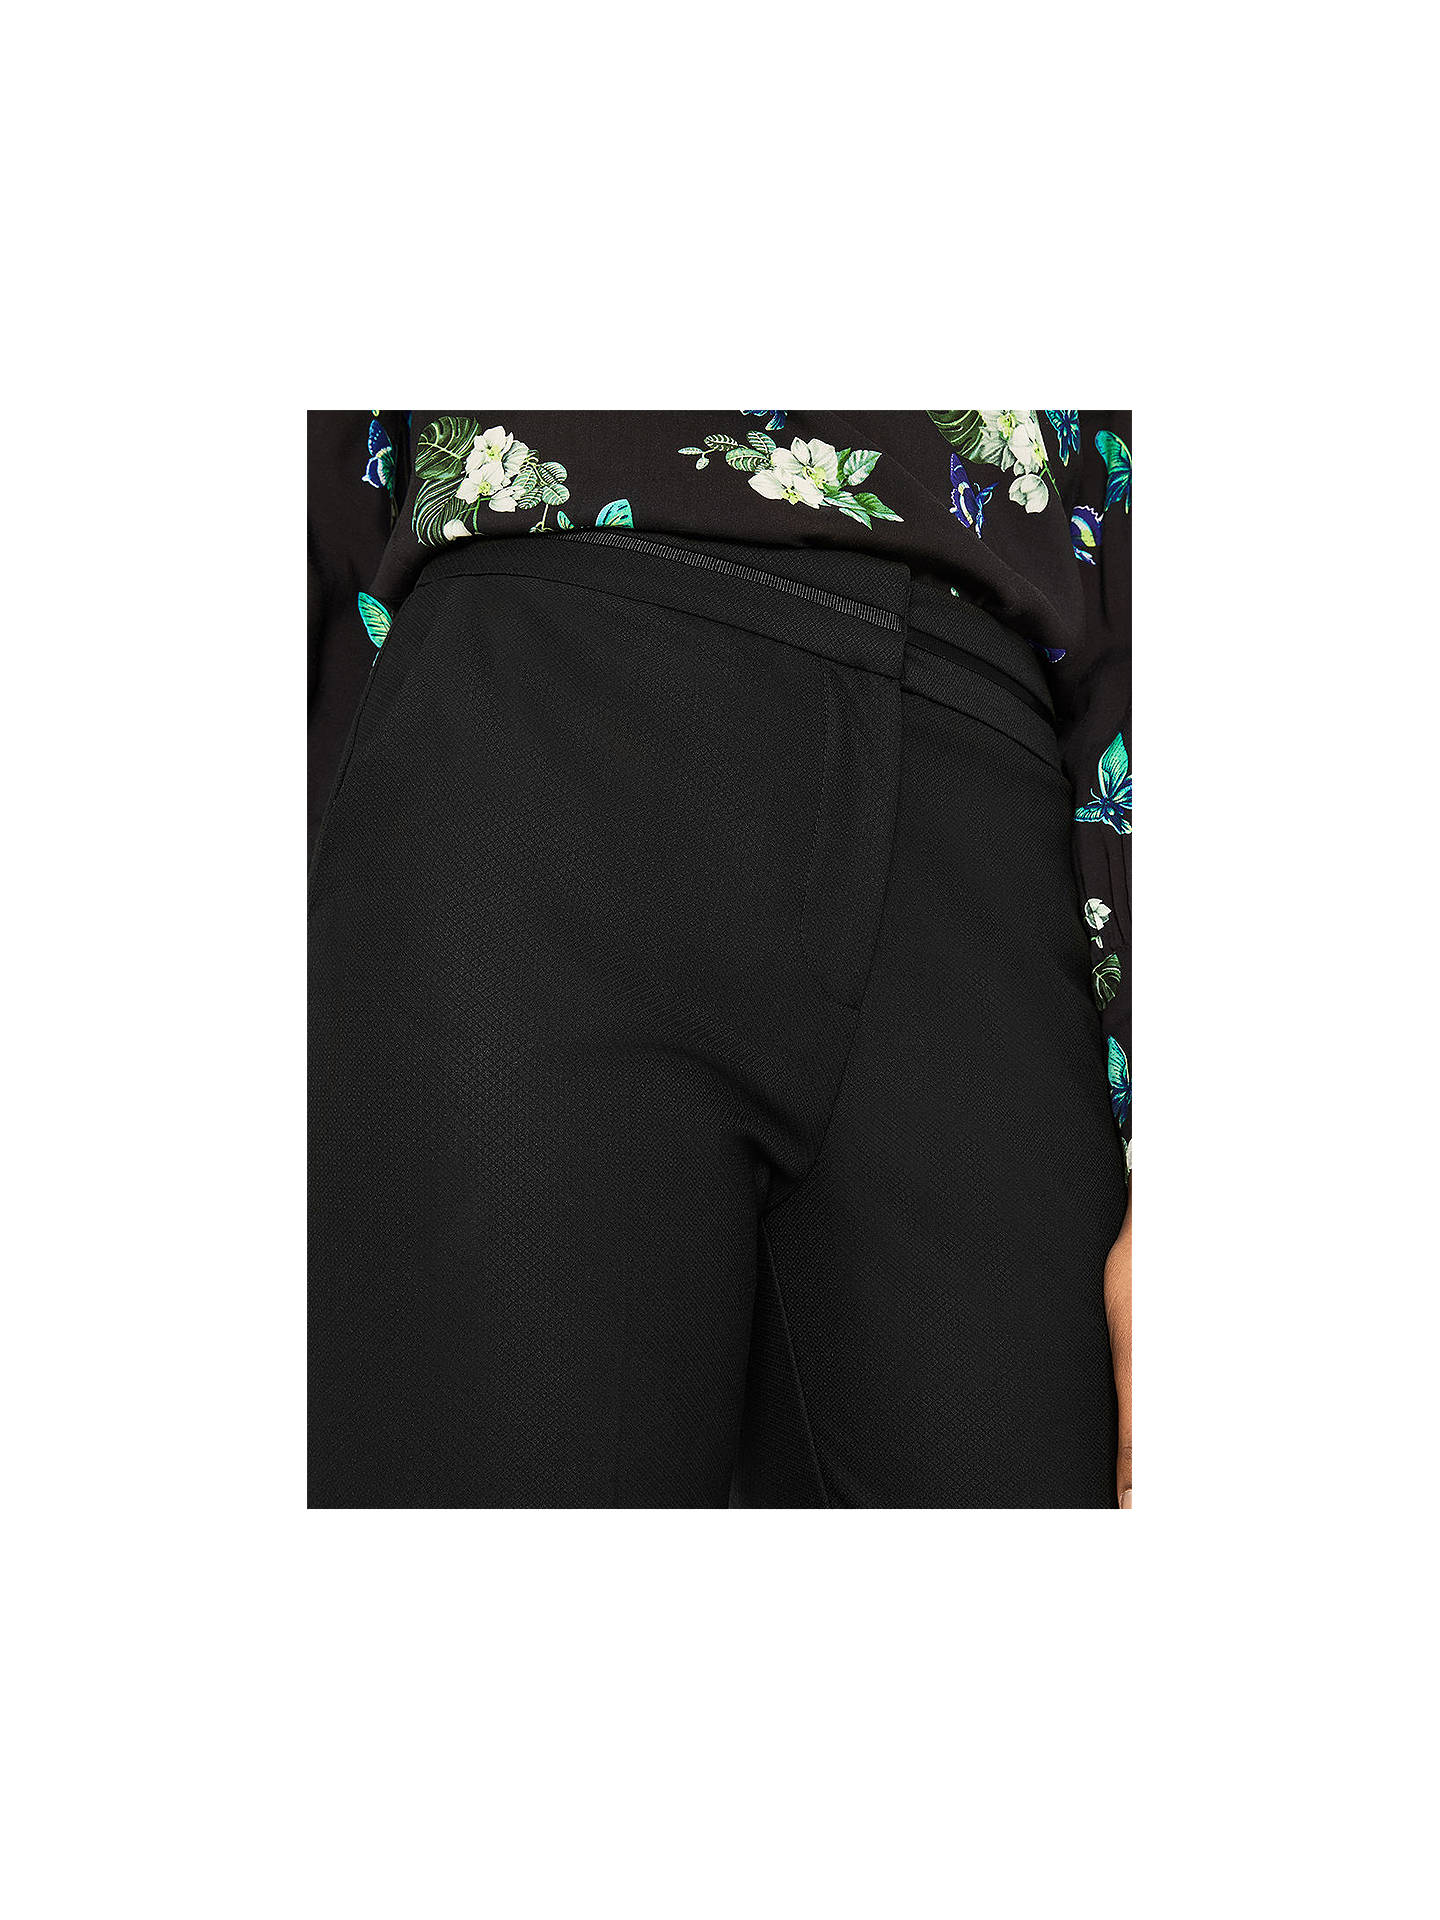 b733a379b209 ... Buy Oasis Camilla Split Detail Trousers, Black, 6 Online at  johnlewis.com